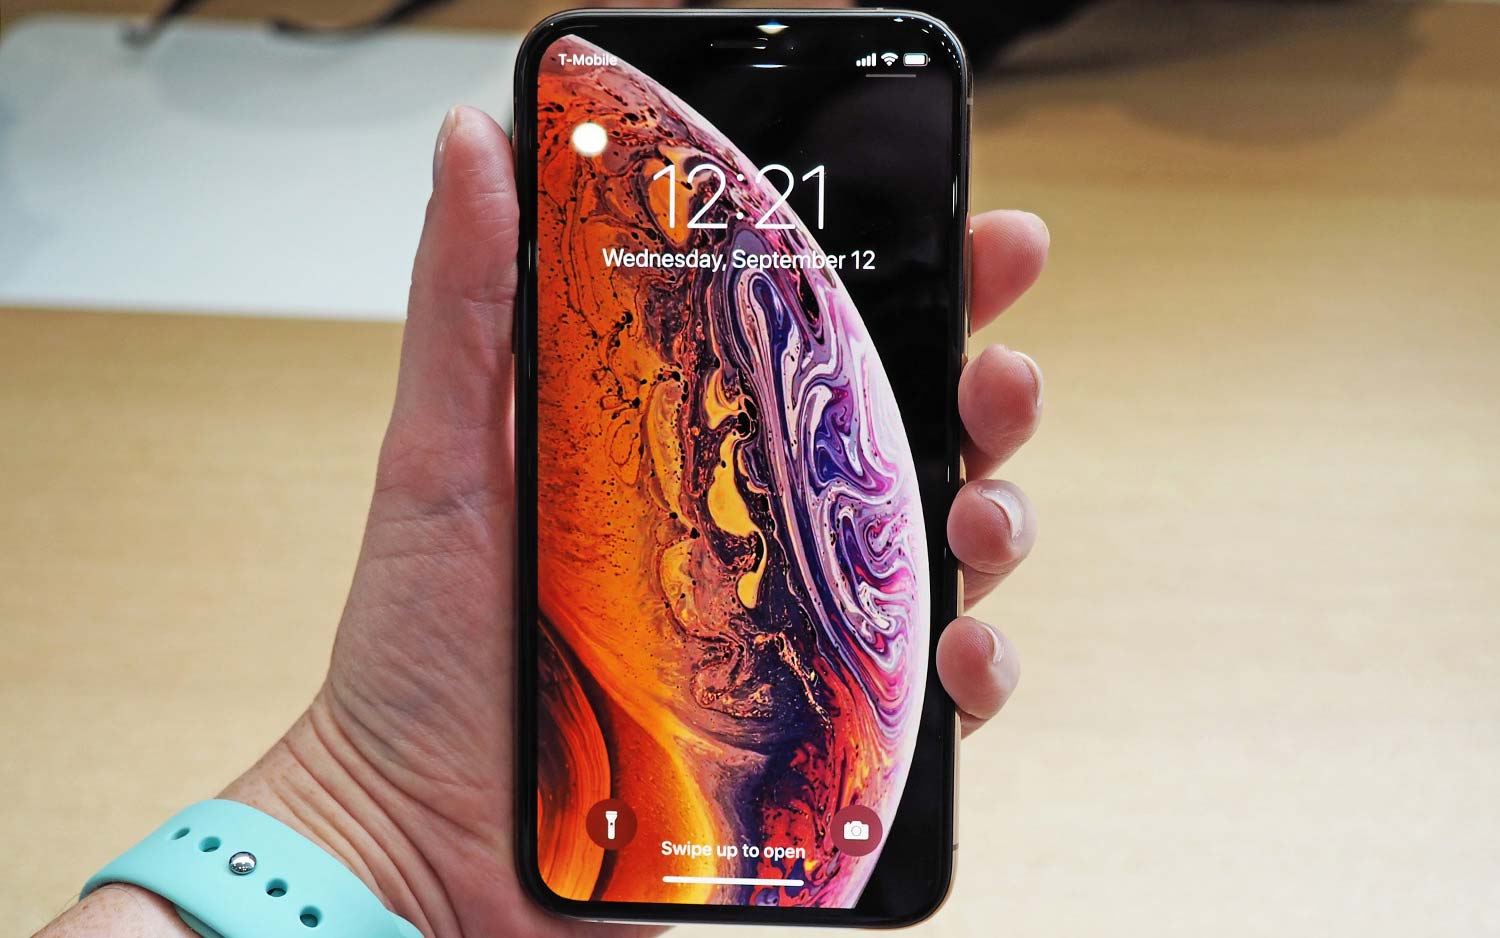 online retailer 32a6b 97bc7 iPhone XS vs. iPhone X: What's Changed? | Tom's Guide